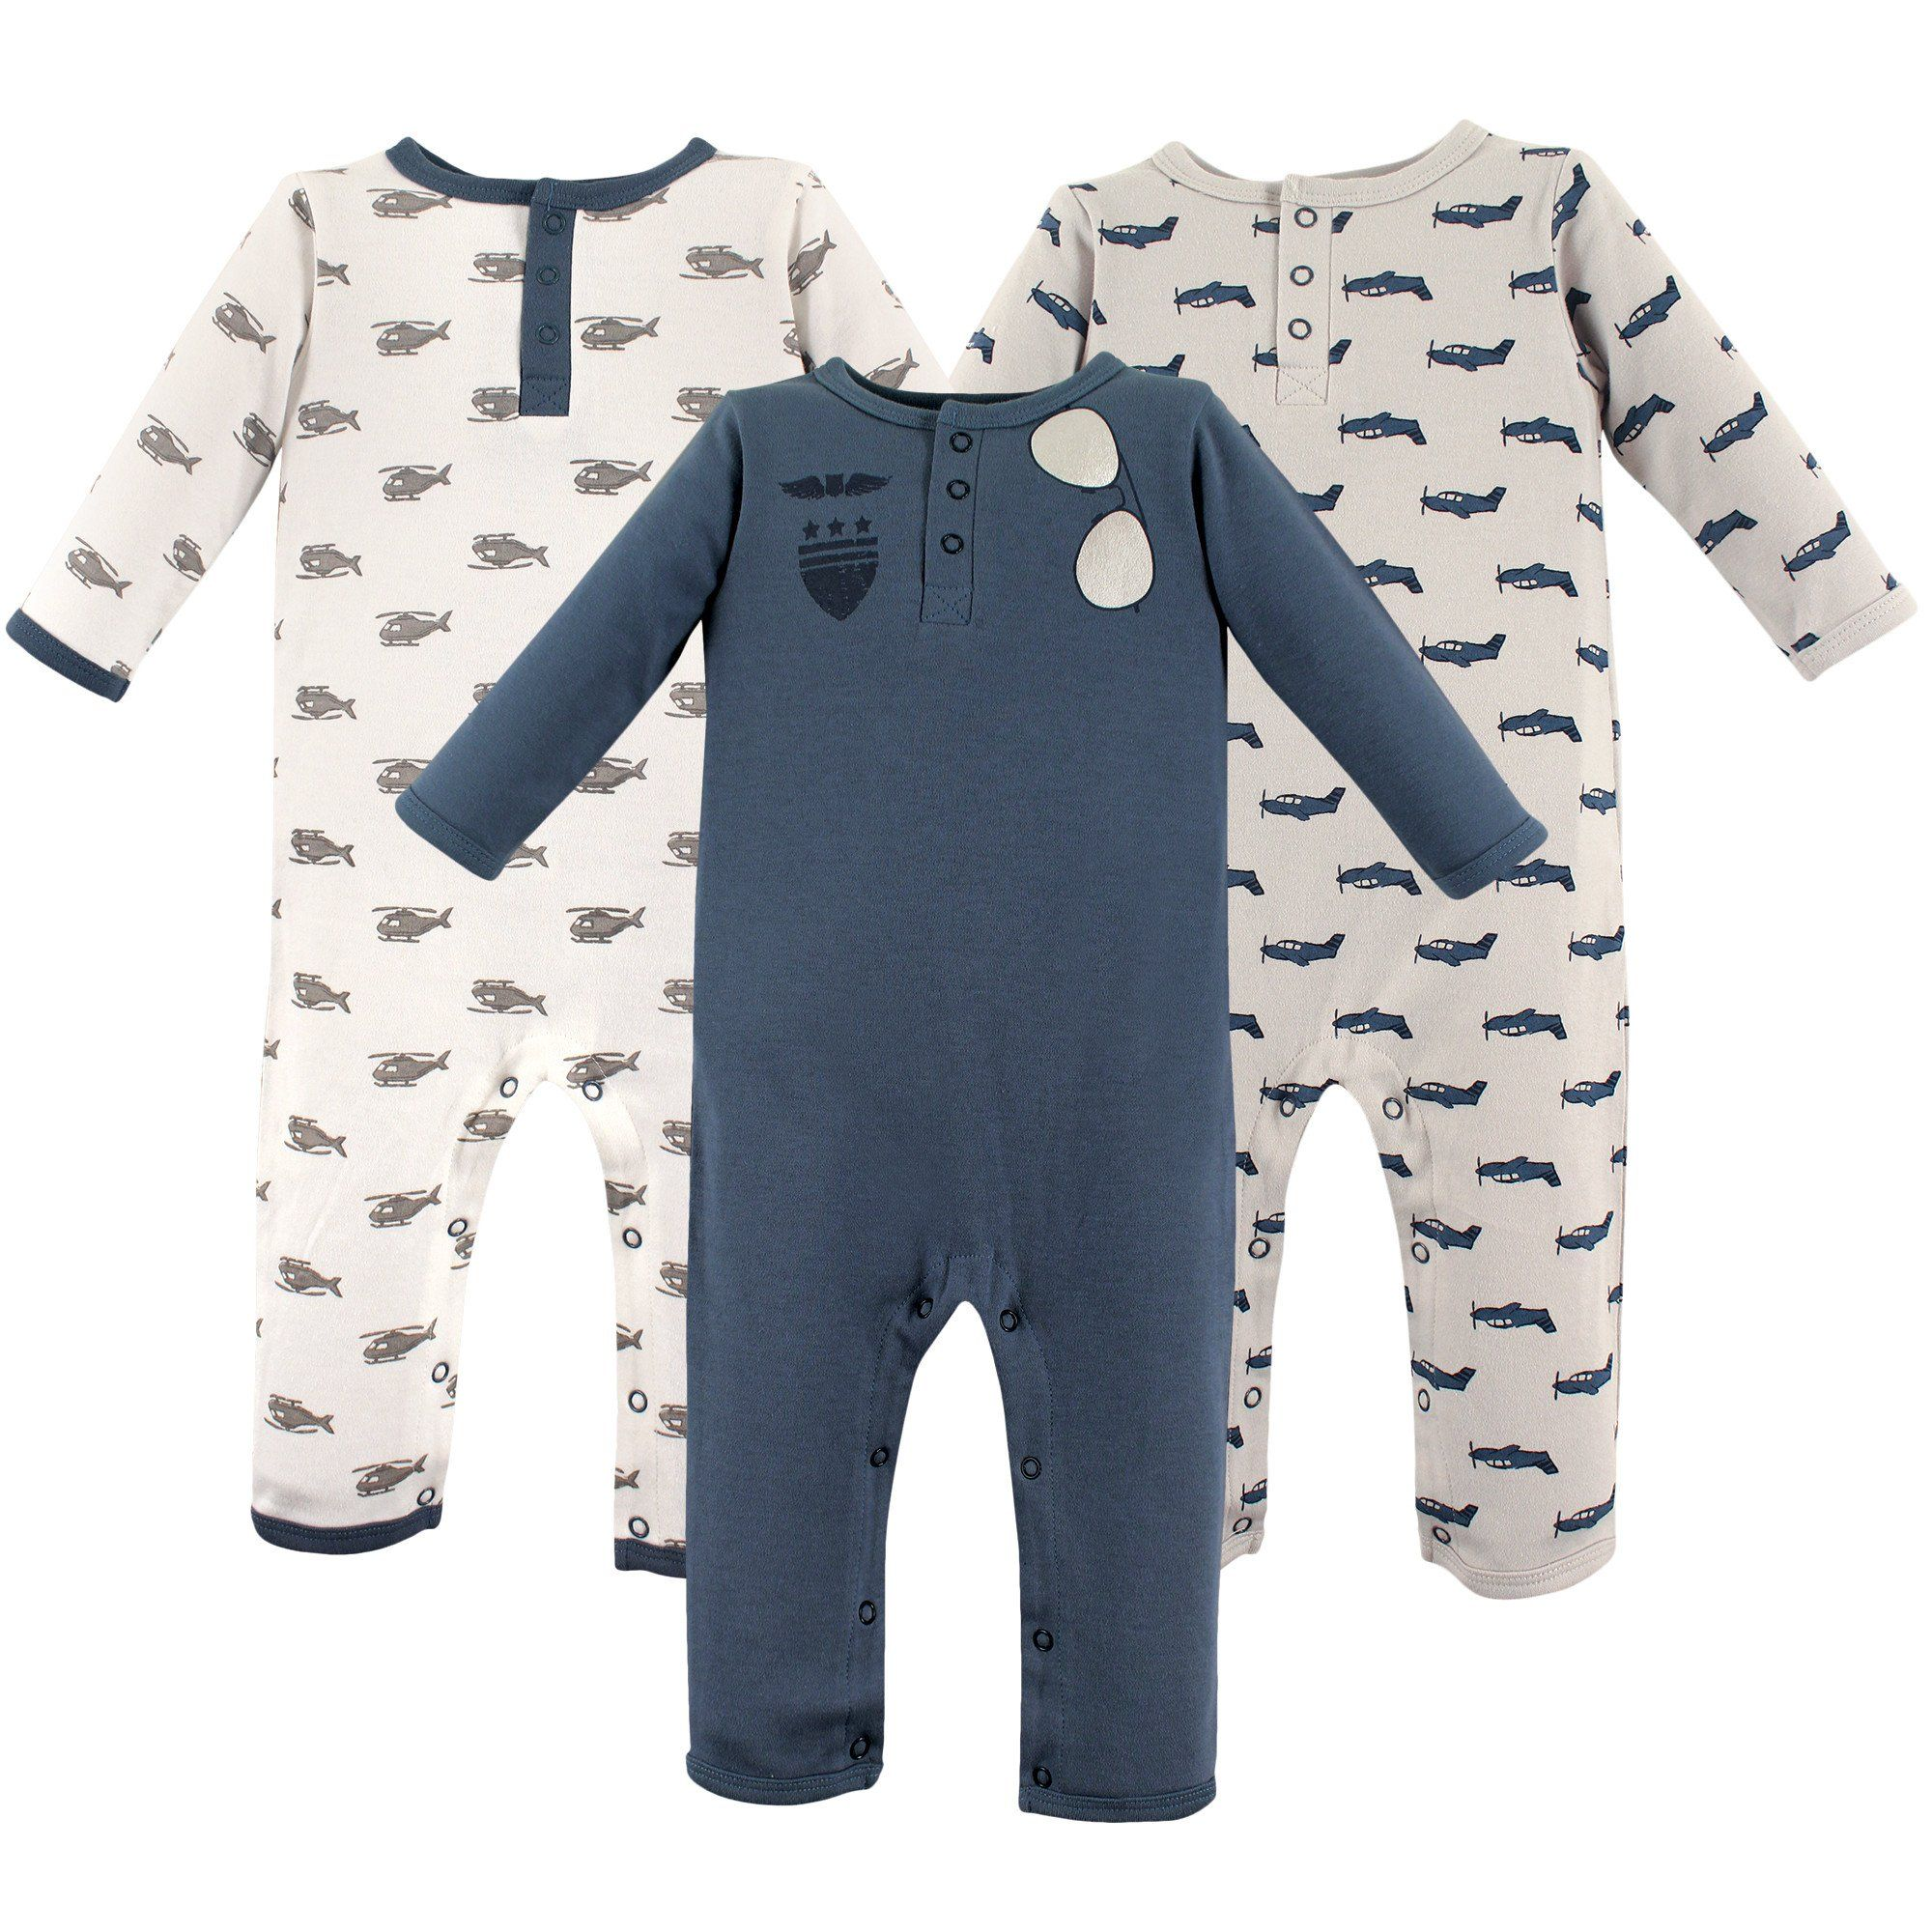 Hudson Baby Baby Cotton Union Suit 3 Pack Aviator 12 18 Months